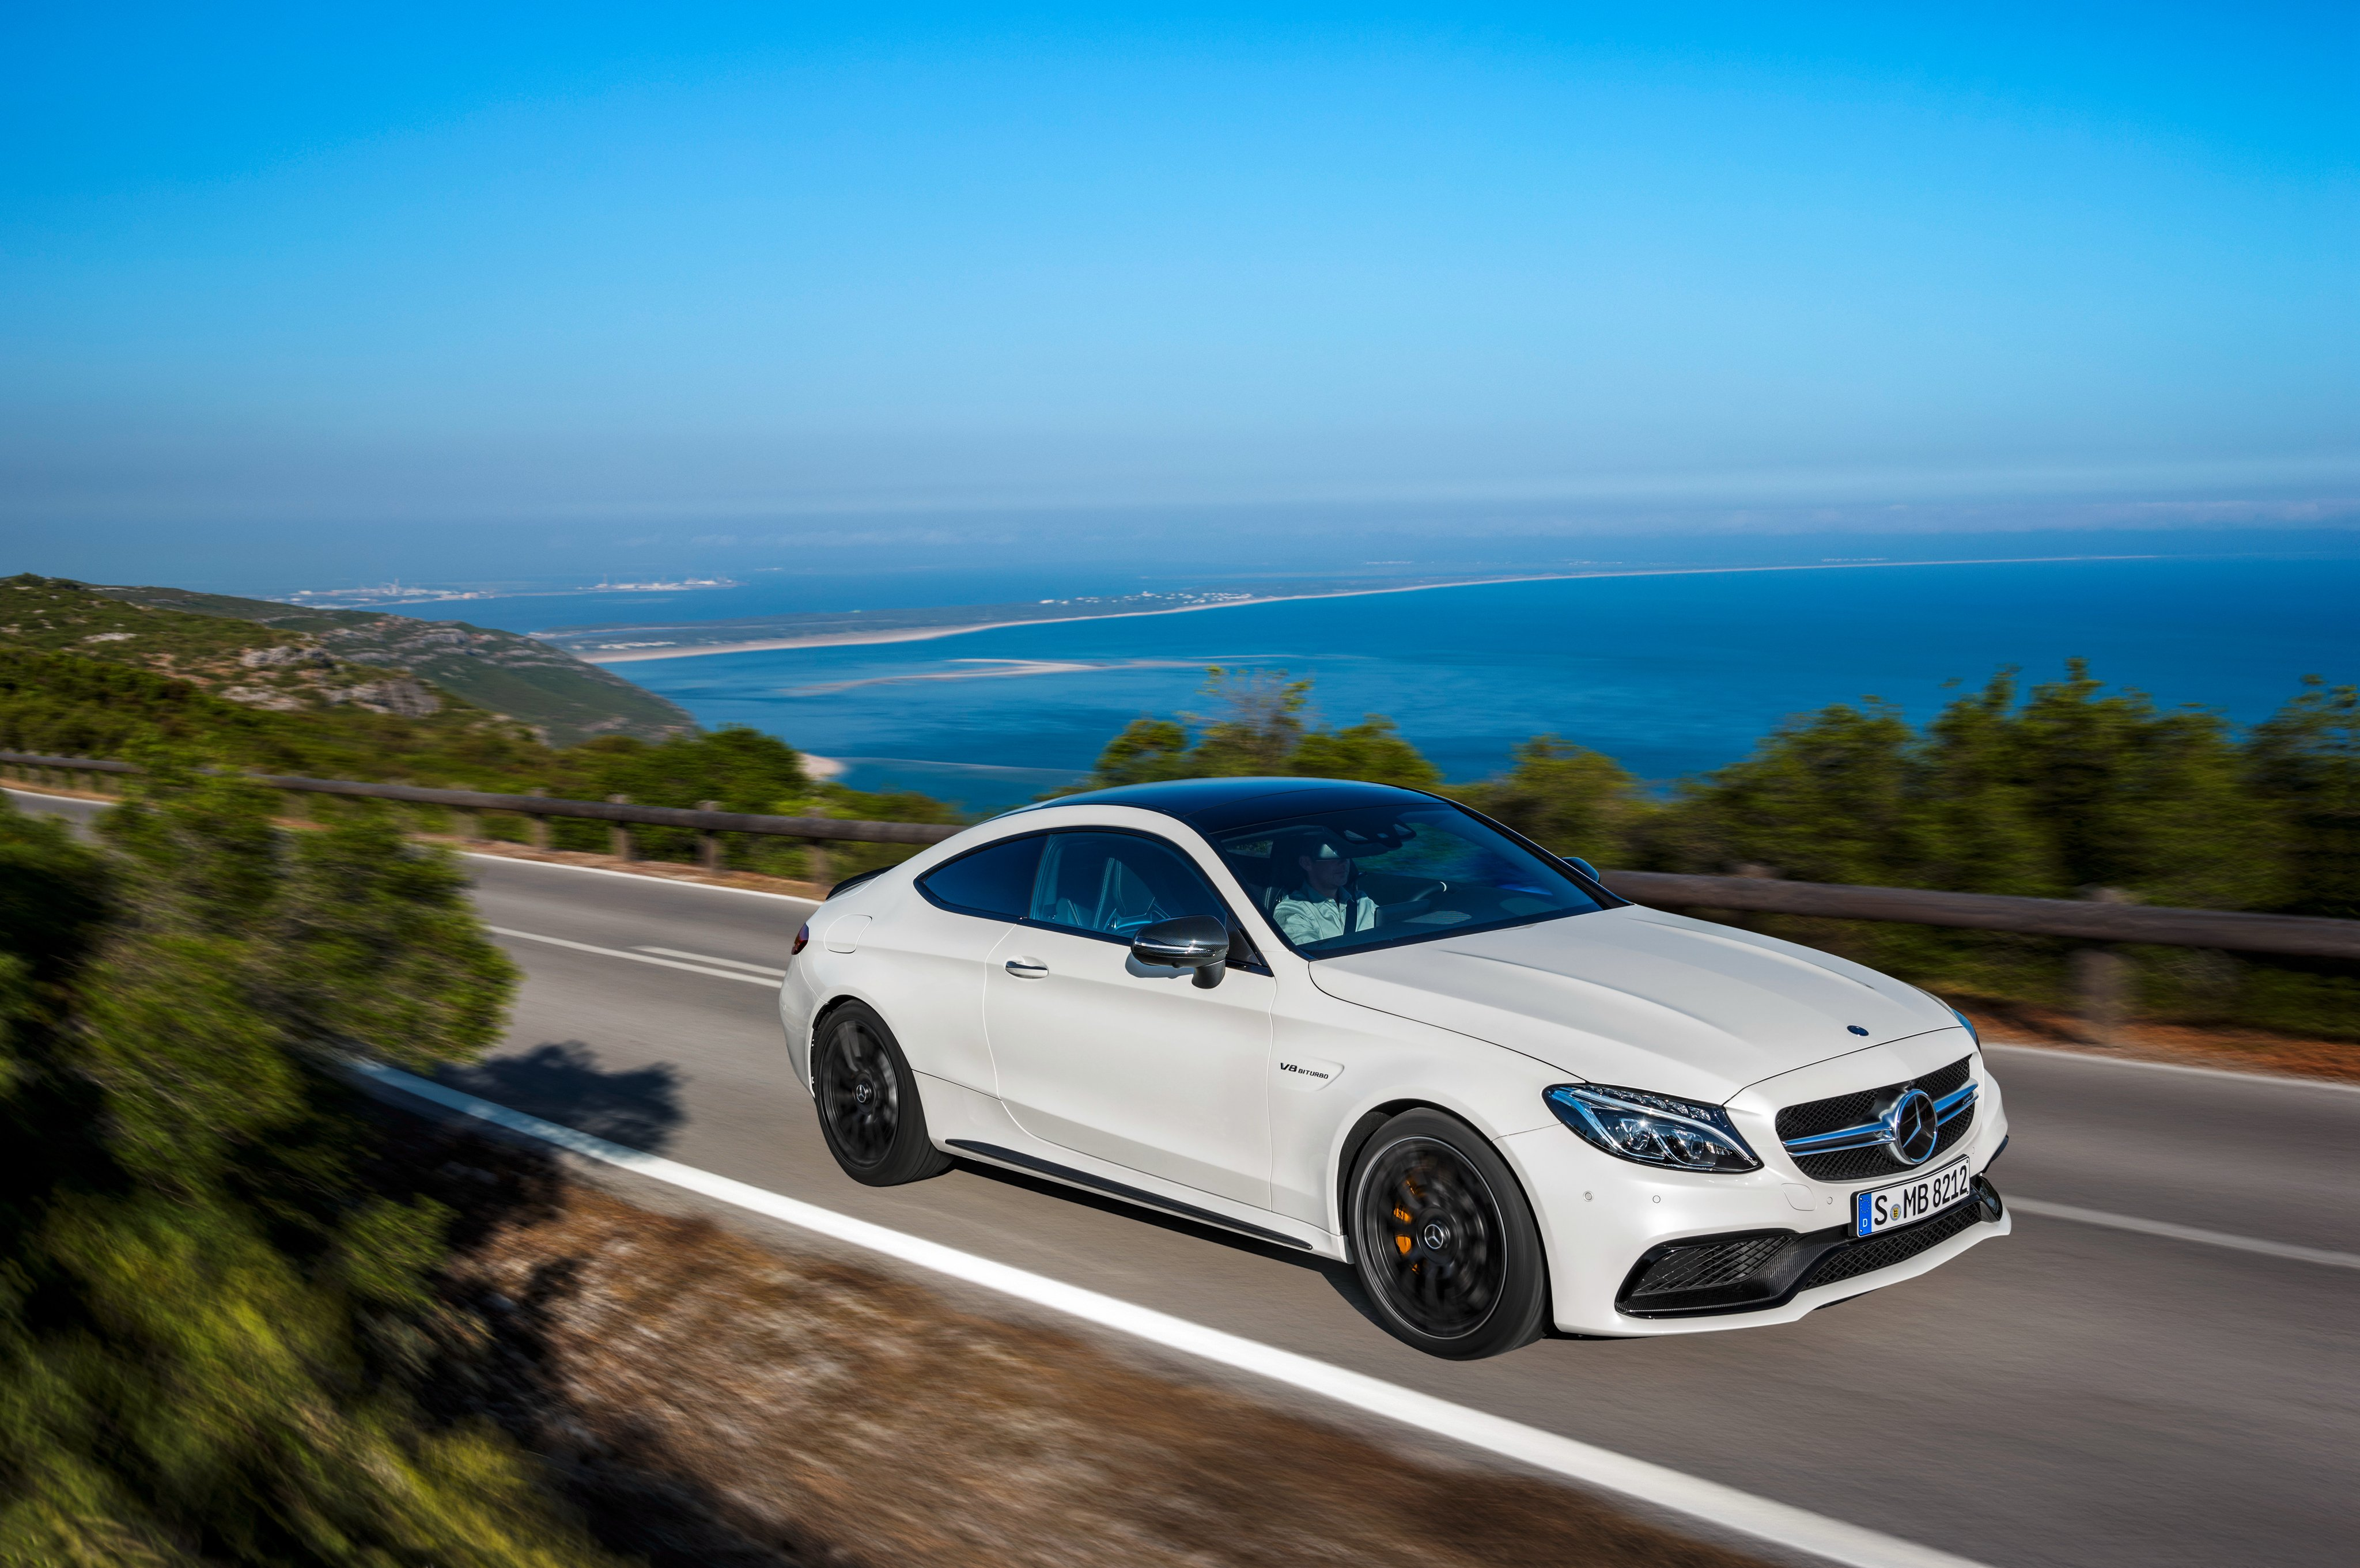 2015 mercedes amg c63 s coupe c205 benz luxury wallpaper. Black Bedroom Furniture Sets. Home Design Ideas